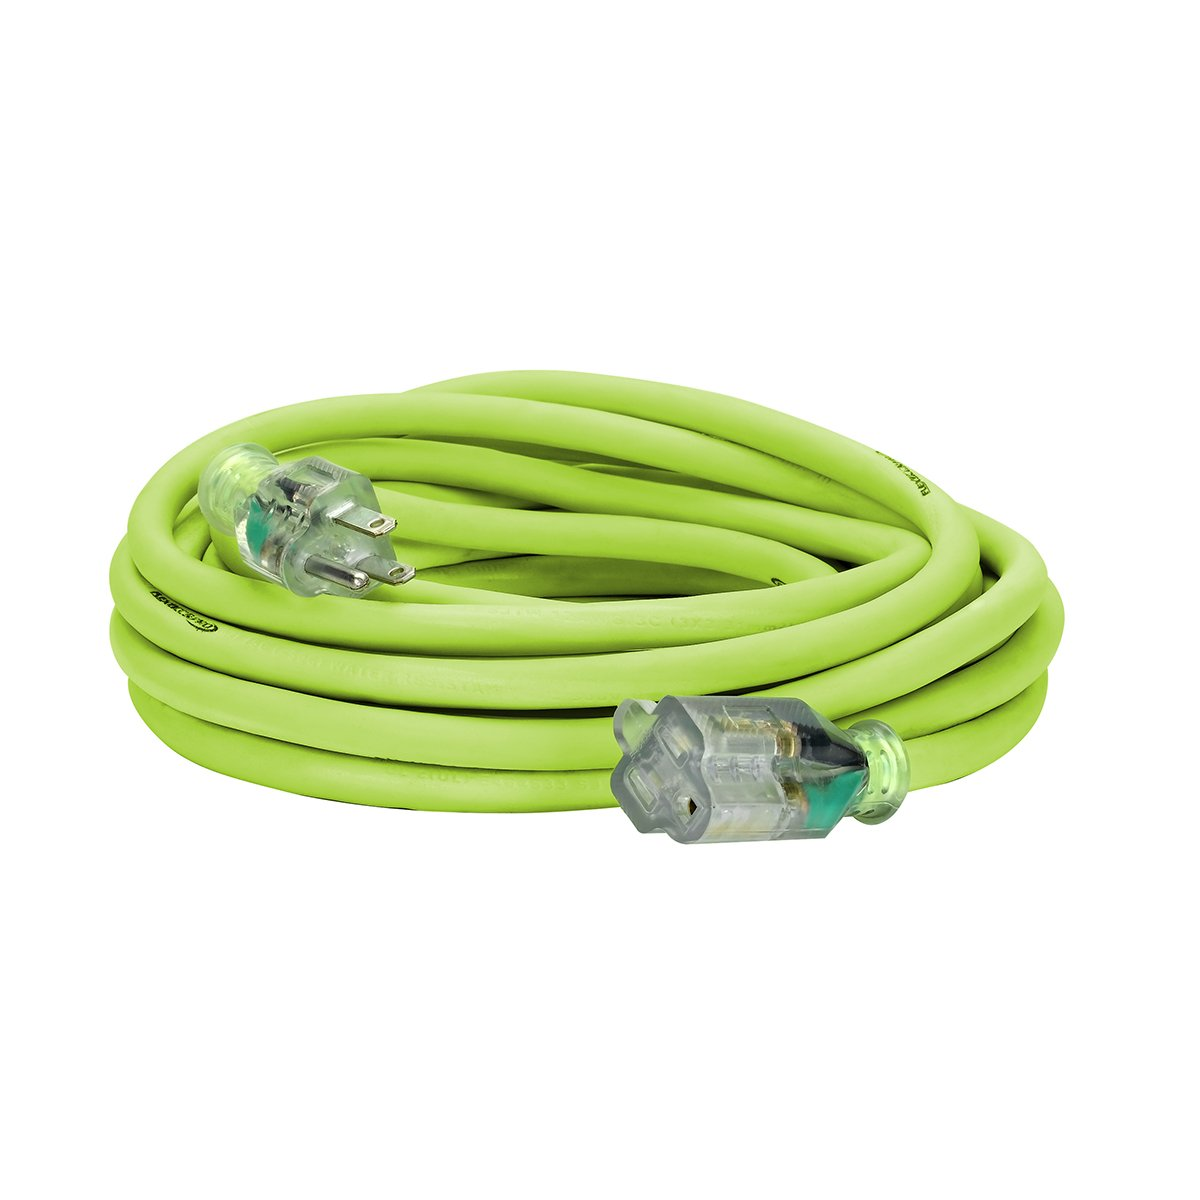 Flexzilla Pro Extension Cord, 12/3 AWG SJTW, 25 ft, Lighted Plug, Indoor/Outdoor, ZillaGreen - 721-123025FZL5F